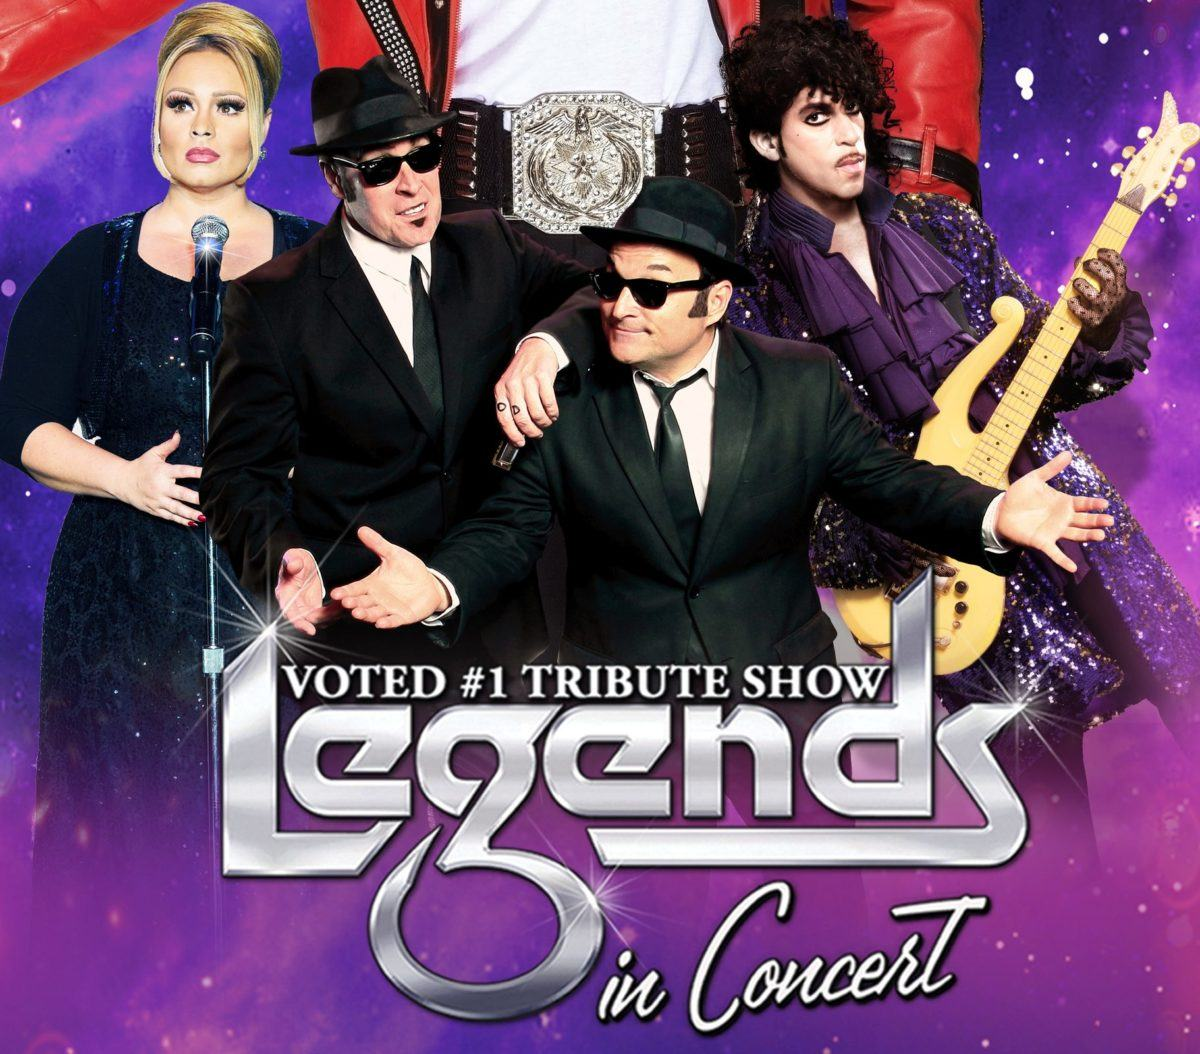 vegas legends in concert review